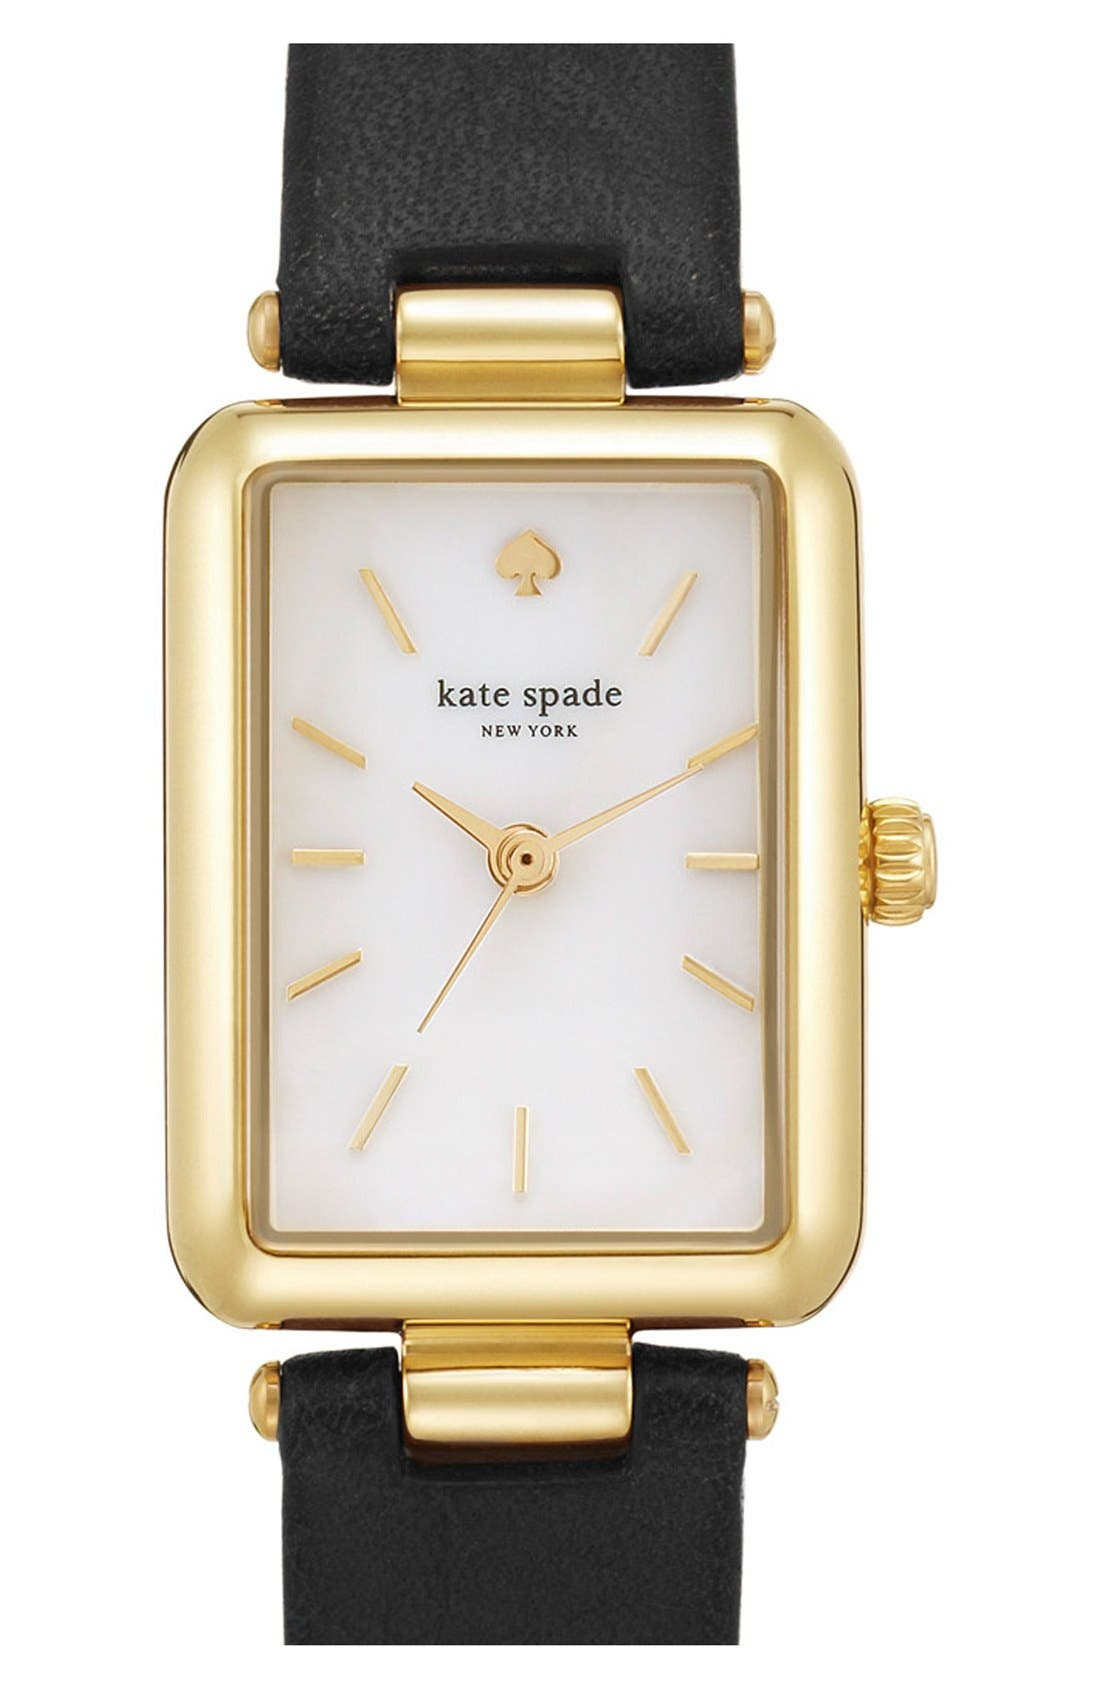 KATE SPADE NEW YORK, 'paley' rectangular leather strap watch, 21mm x 28mm, Main thumbnail 1, color, 001